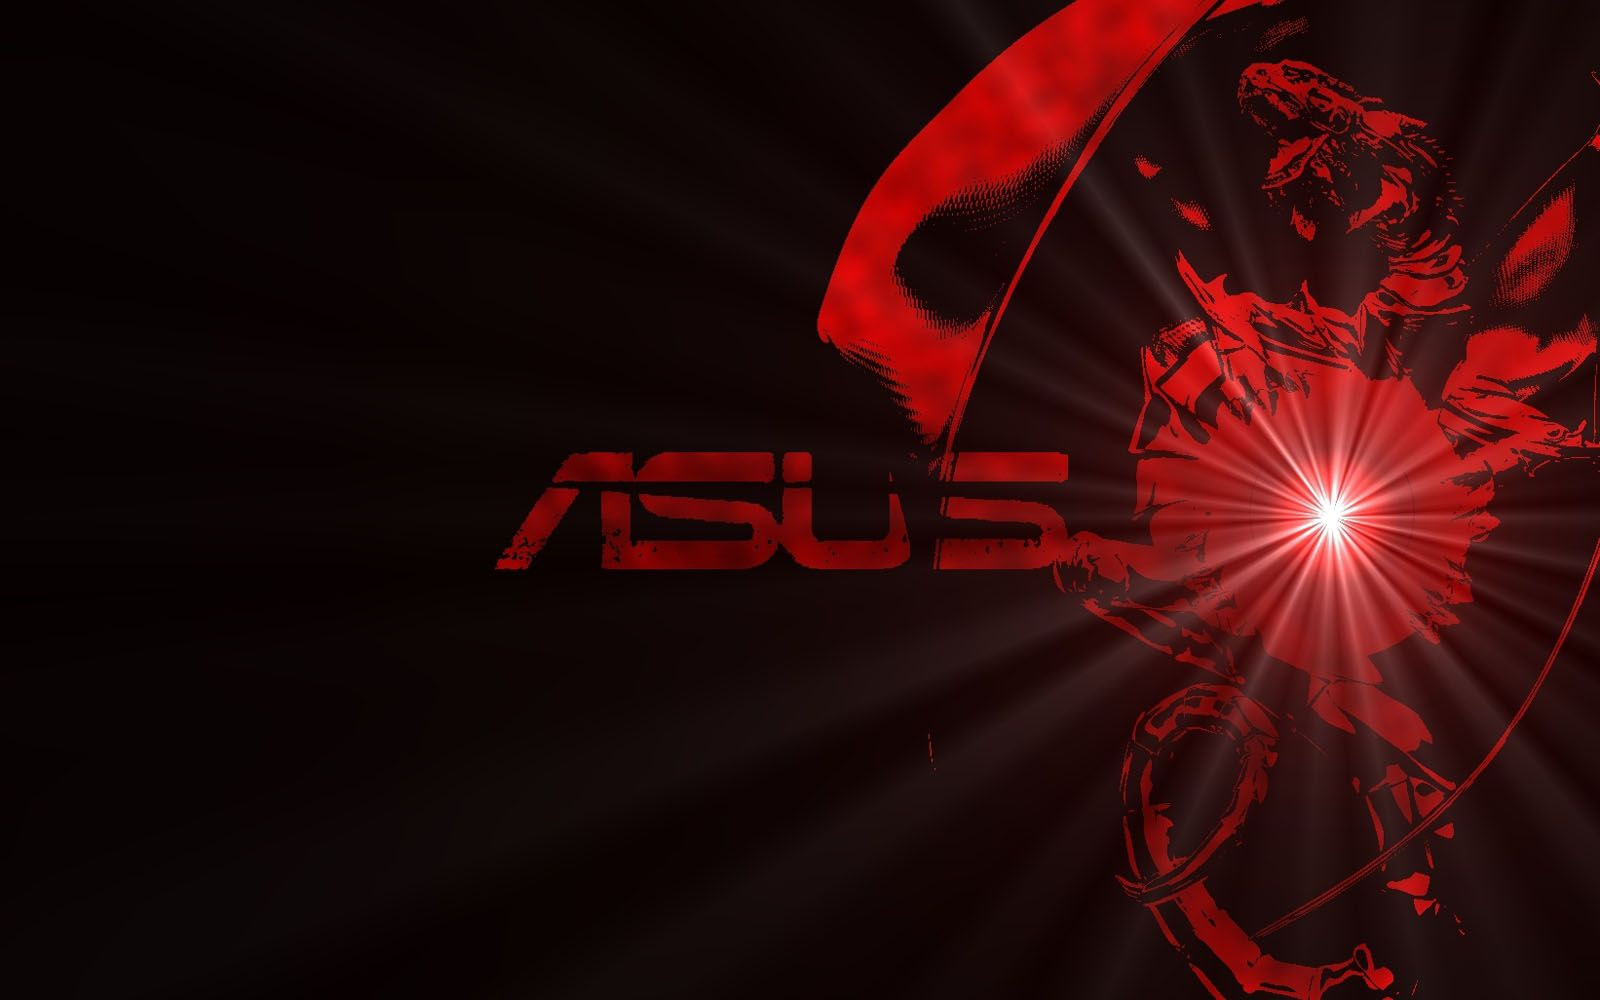 Asus Wallpapers Pictures Images   ASUS in 2019   Wallpaper, Halloween backgrounds, Wallpaper ...